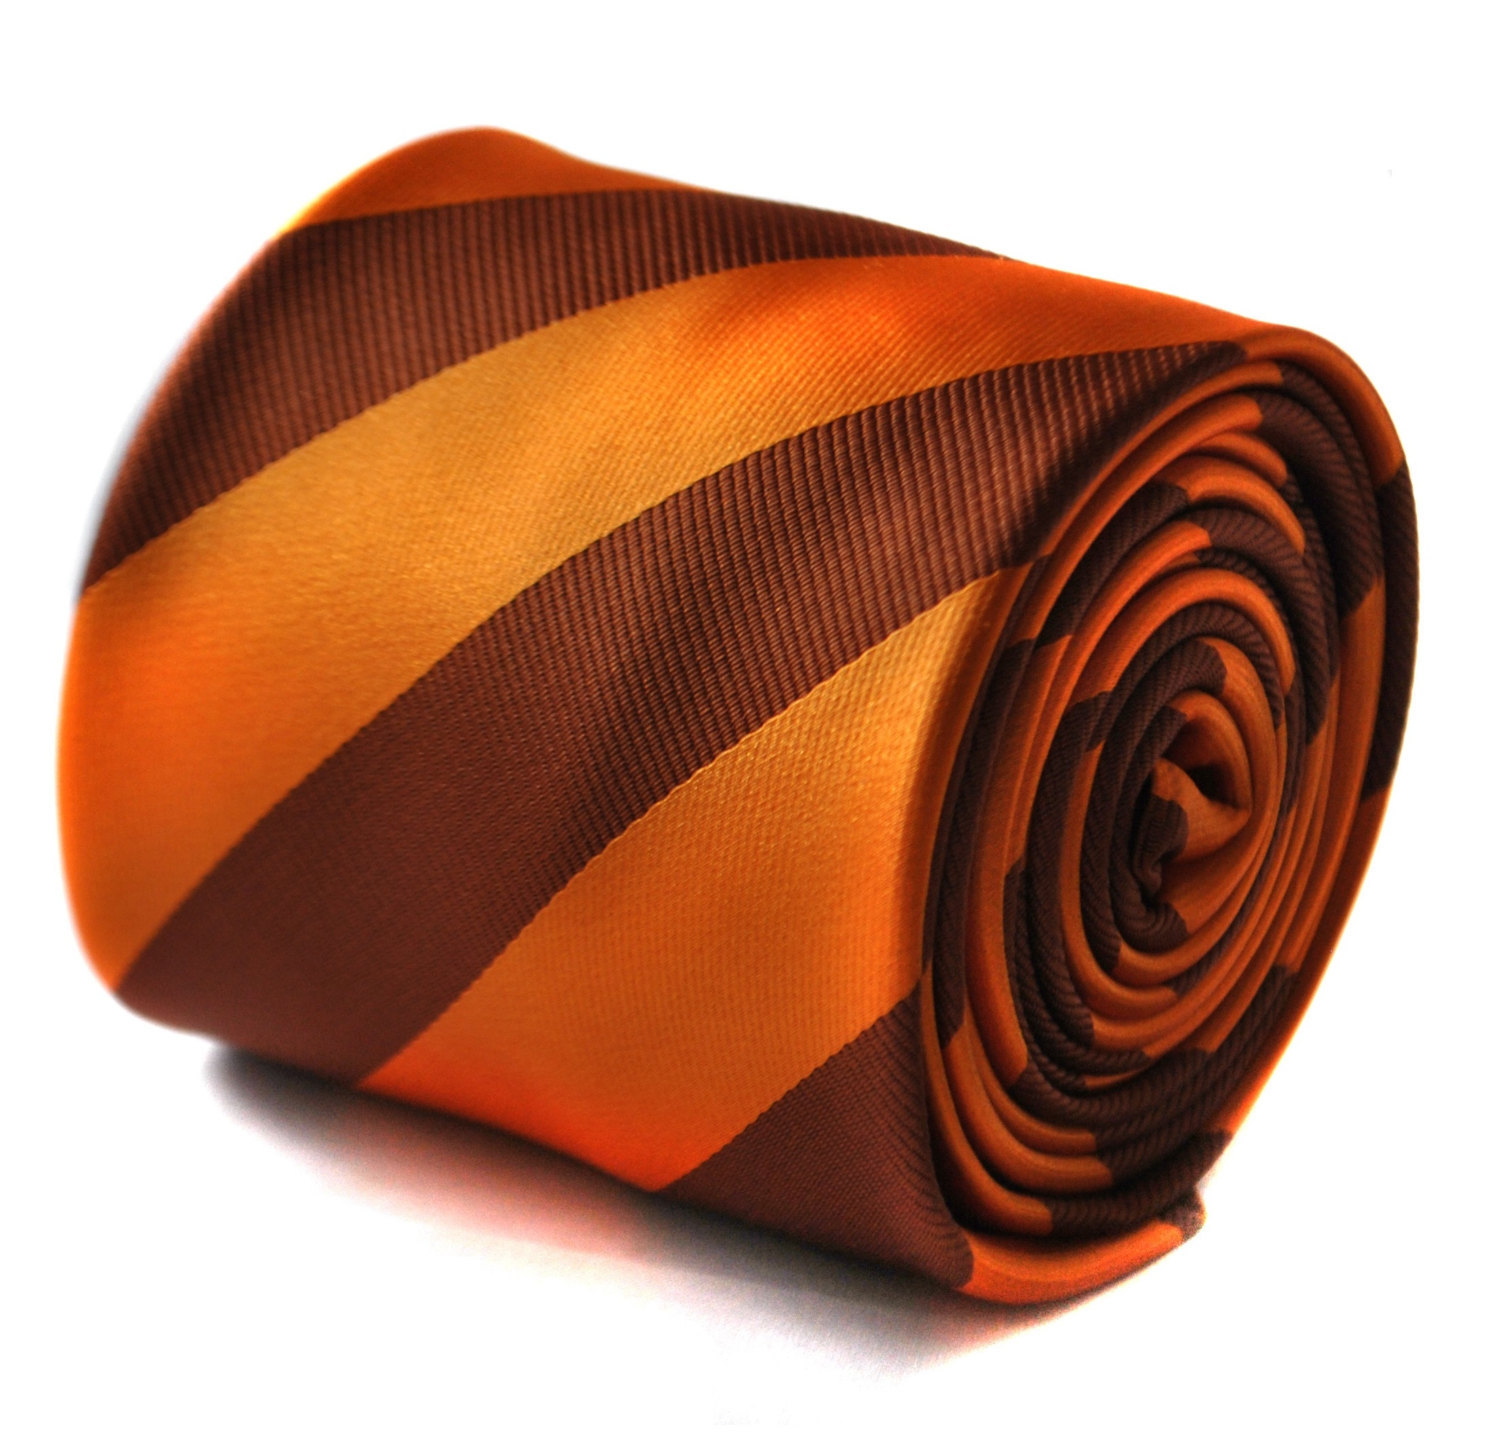 Orange and chocolate brown barber striped tie with signature floral design to th